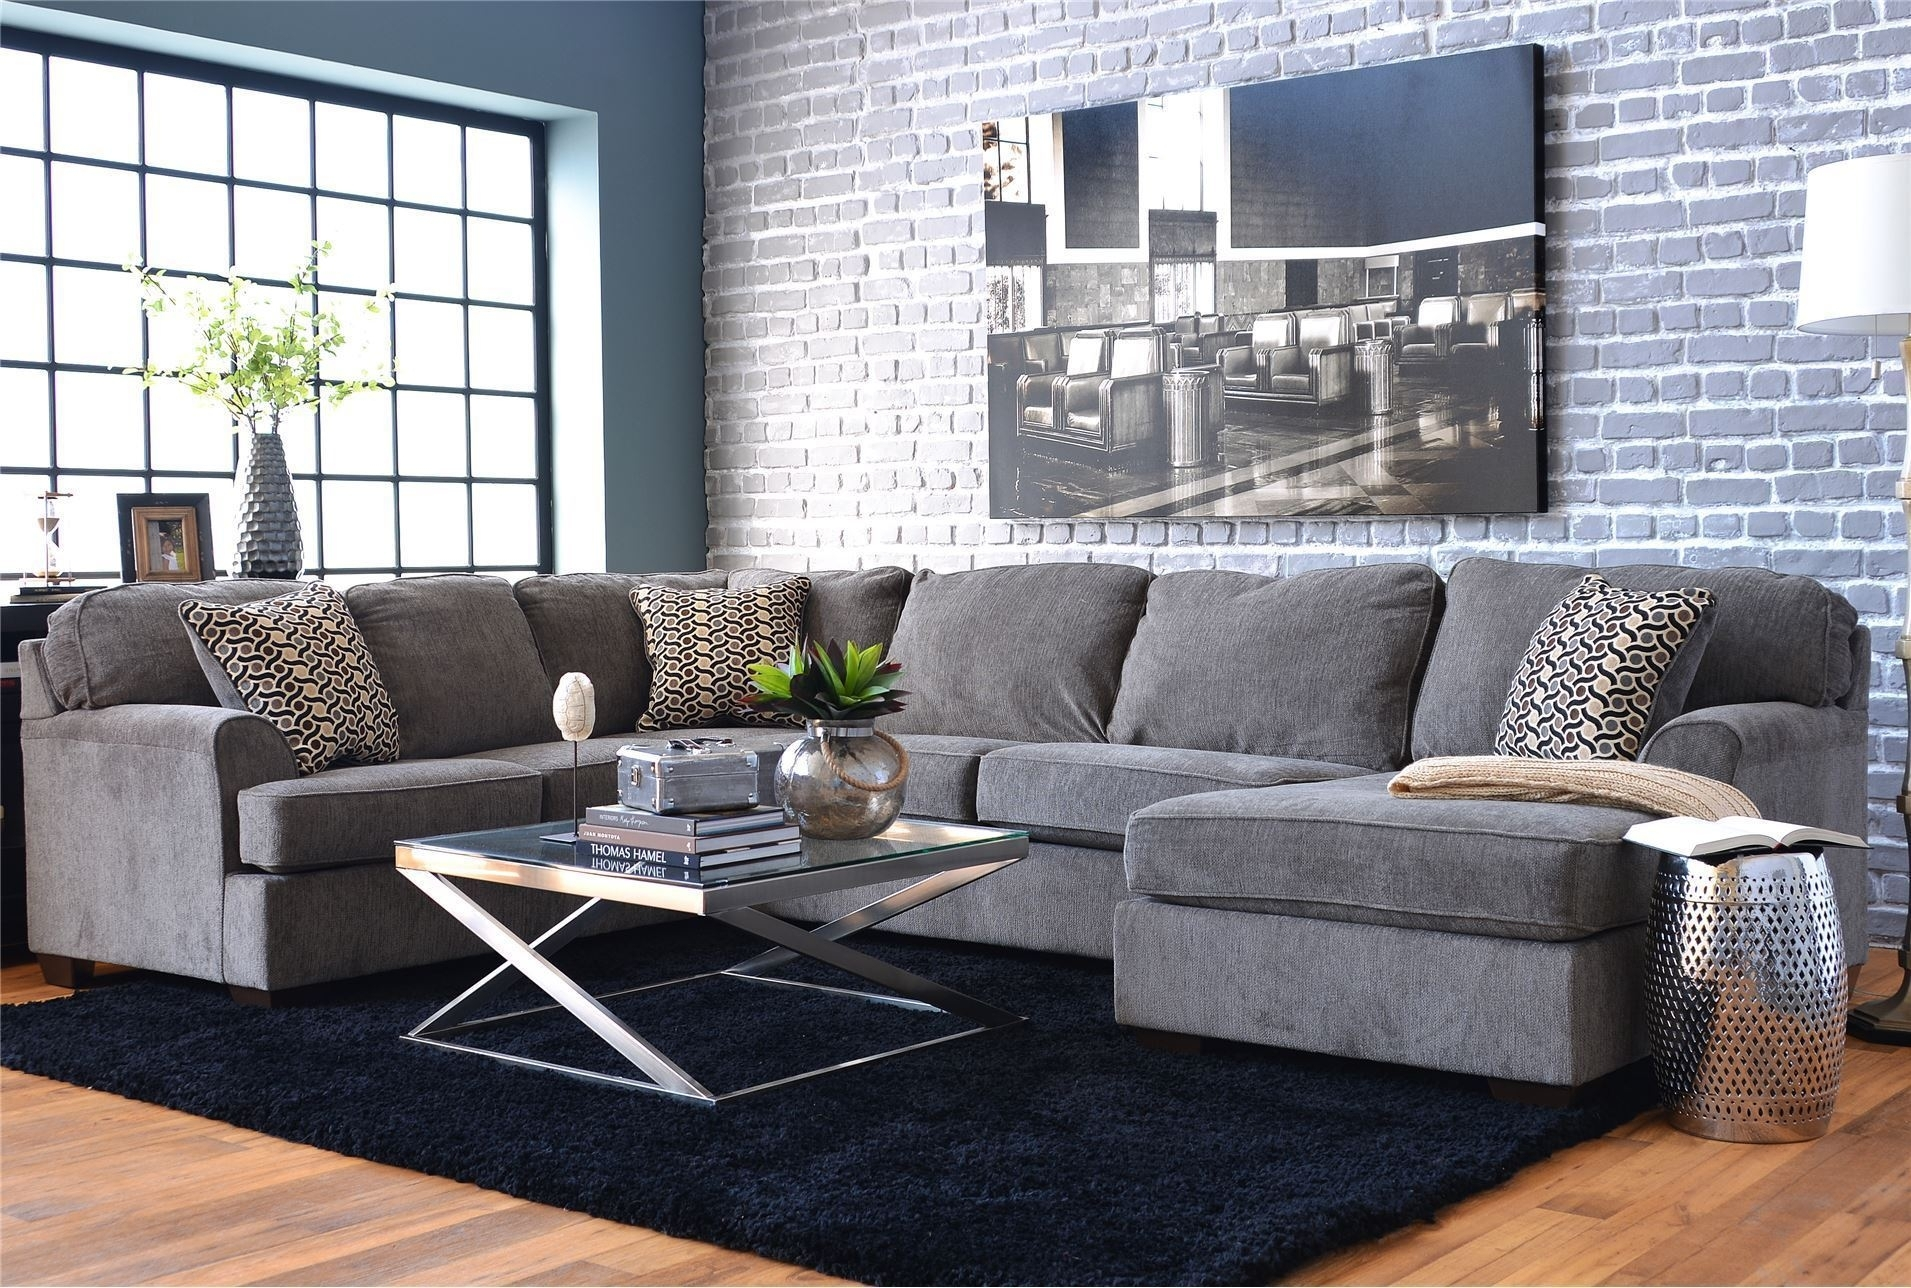 Jayceon Steel 3 Pc Laf Corner Chaise Sectional T Regarding Malbry Point 3 Piece Sectionals With Laf Chaise (Image 14 of 25)